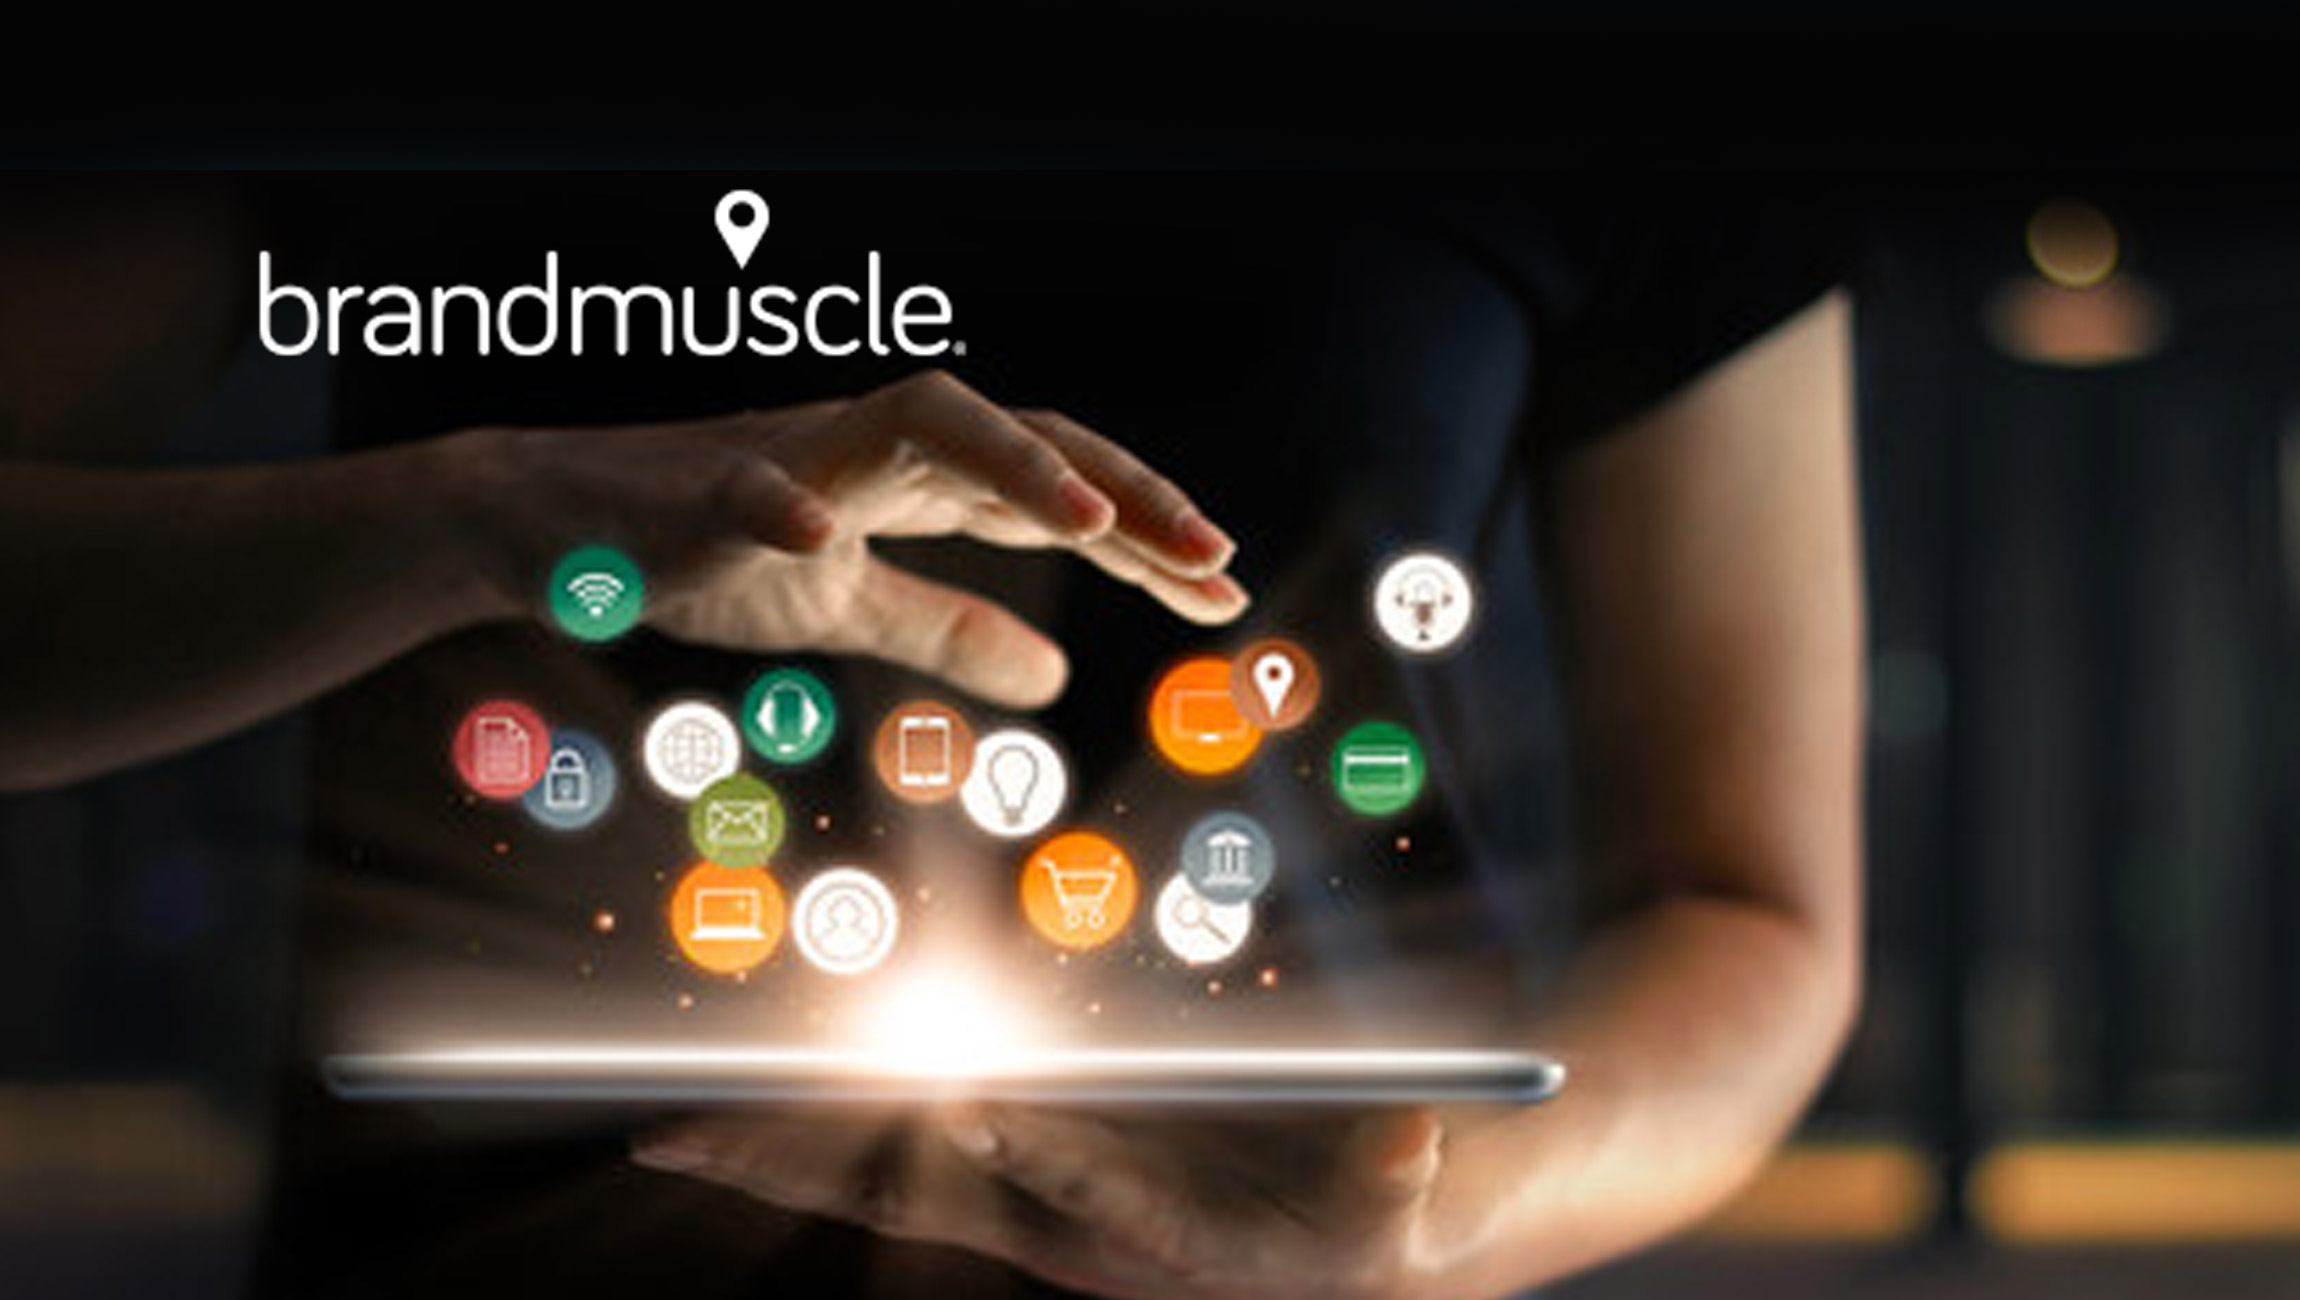 No Brand Left Behind: BrandMuscle Offers Leading Local Marketing Platform to Small and Midsize Businesses